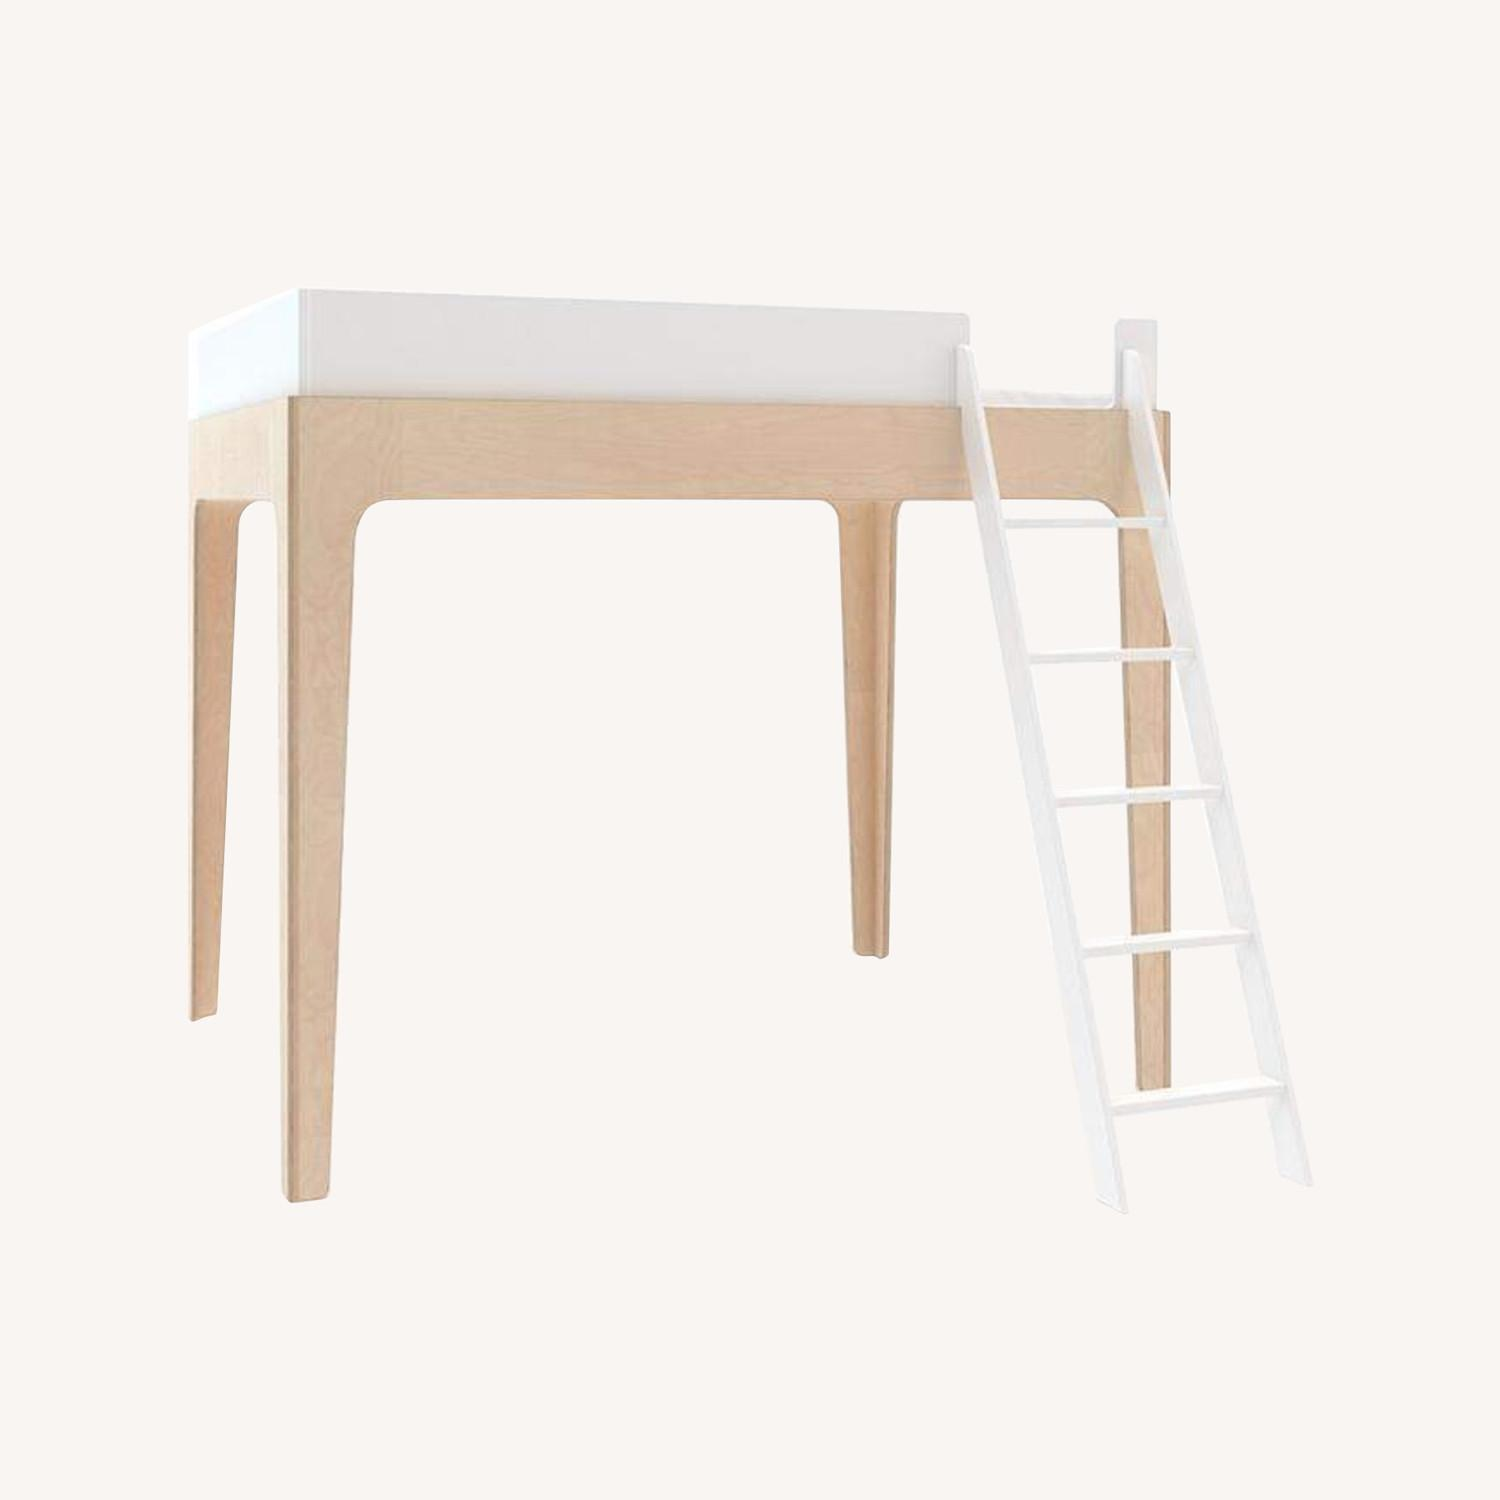 Oeuf Perch Modern Classic Birch Bunk Bed - image-0